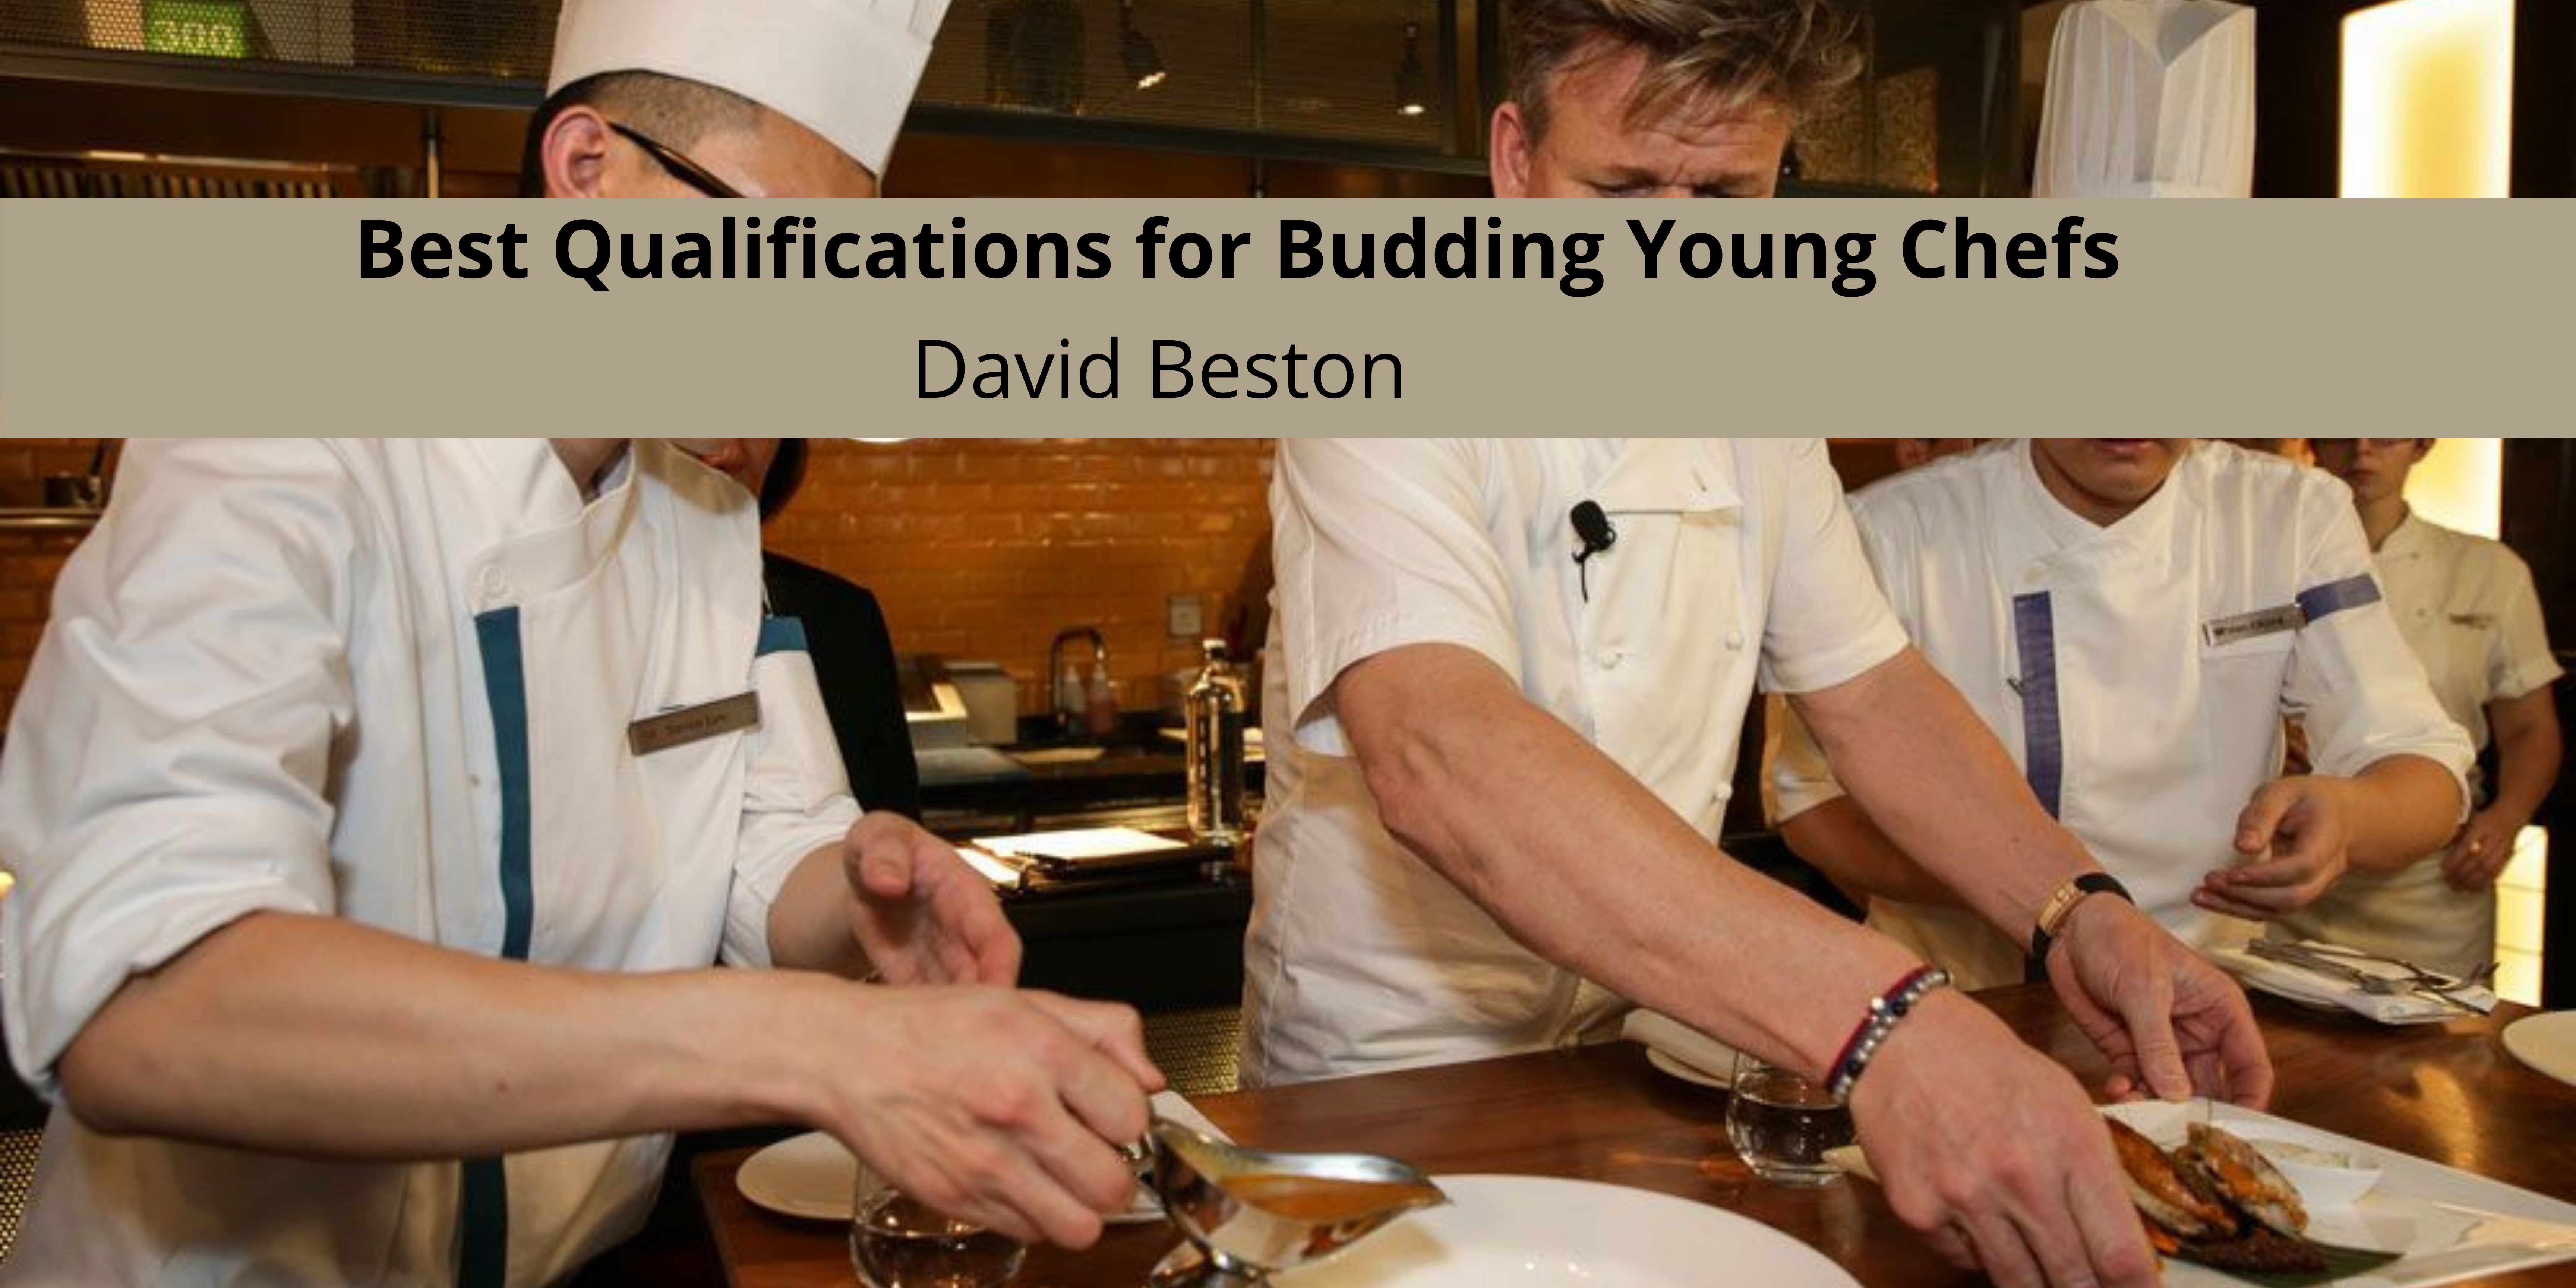 New York Chef David Beston Outlines Best Qualifications for Budding Young Chefs